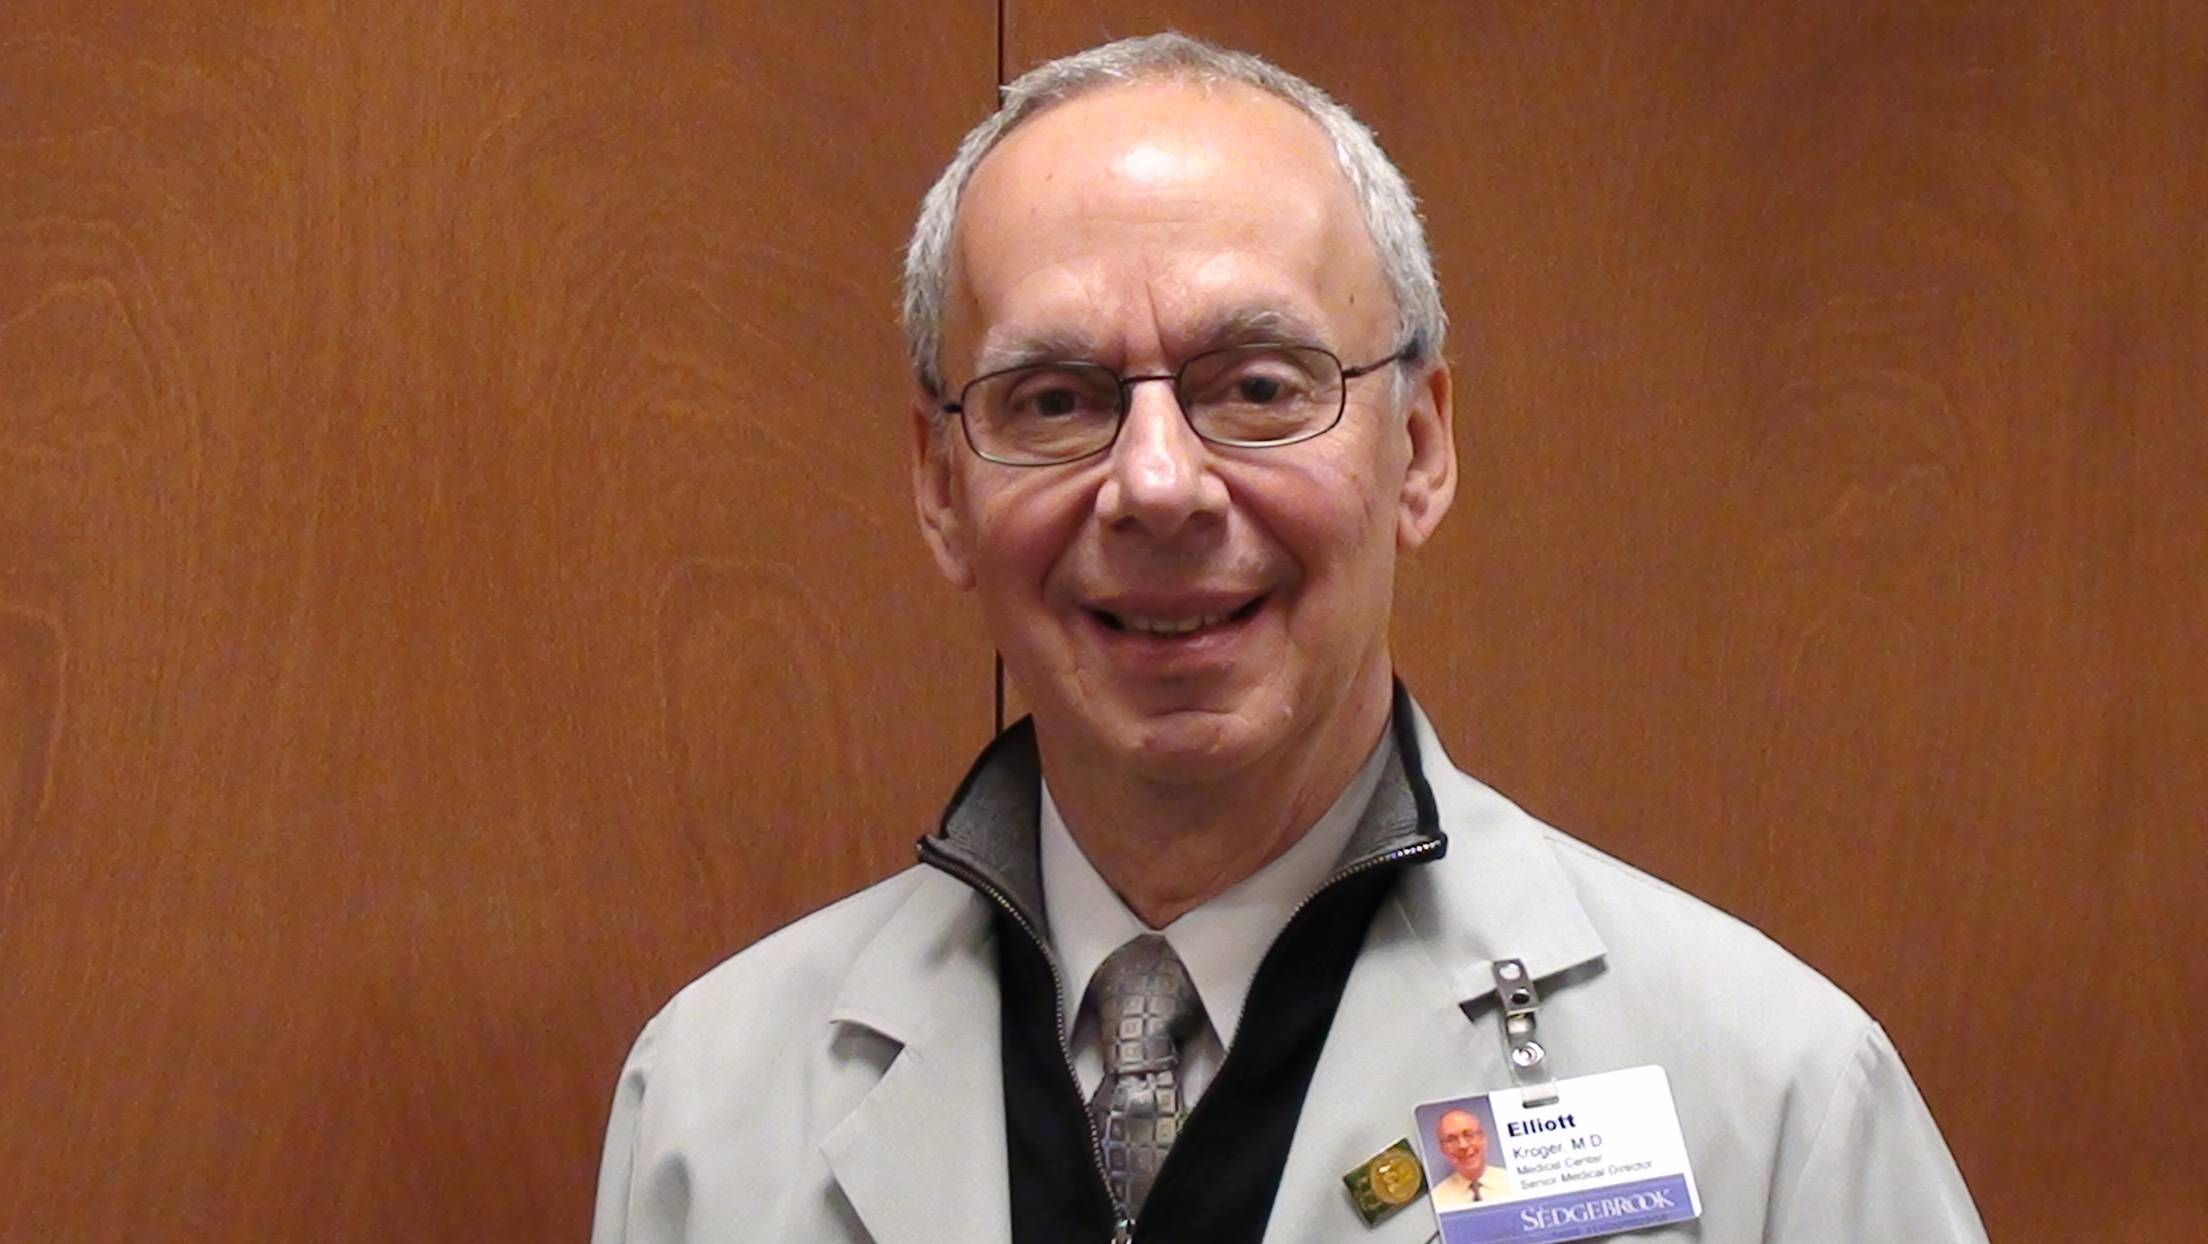 Dr. Elliott Kroger, medical director and onsite physician at Sedgebrook